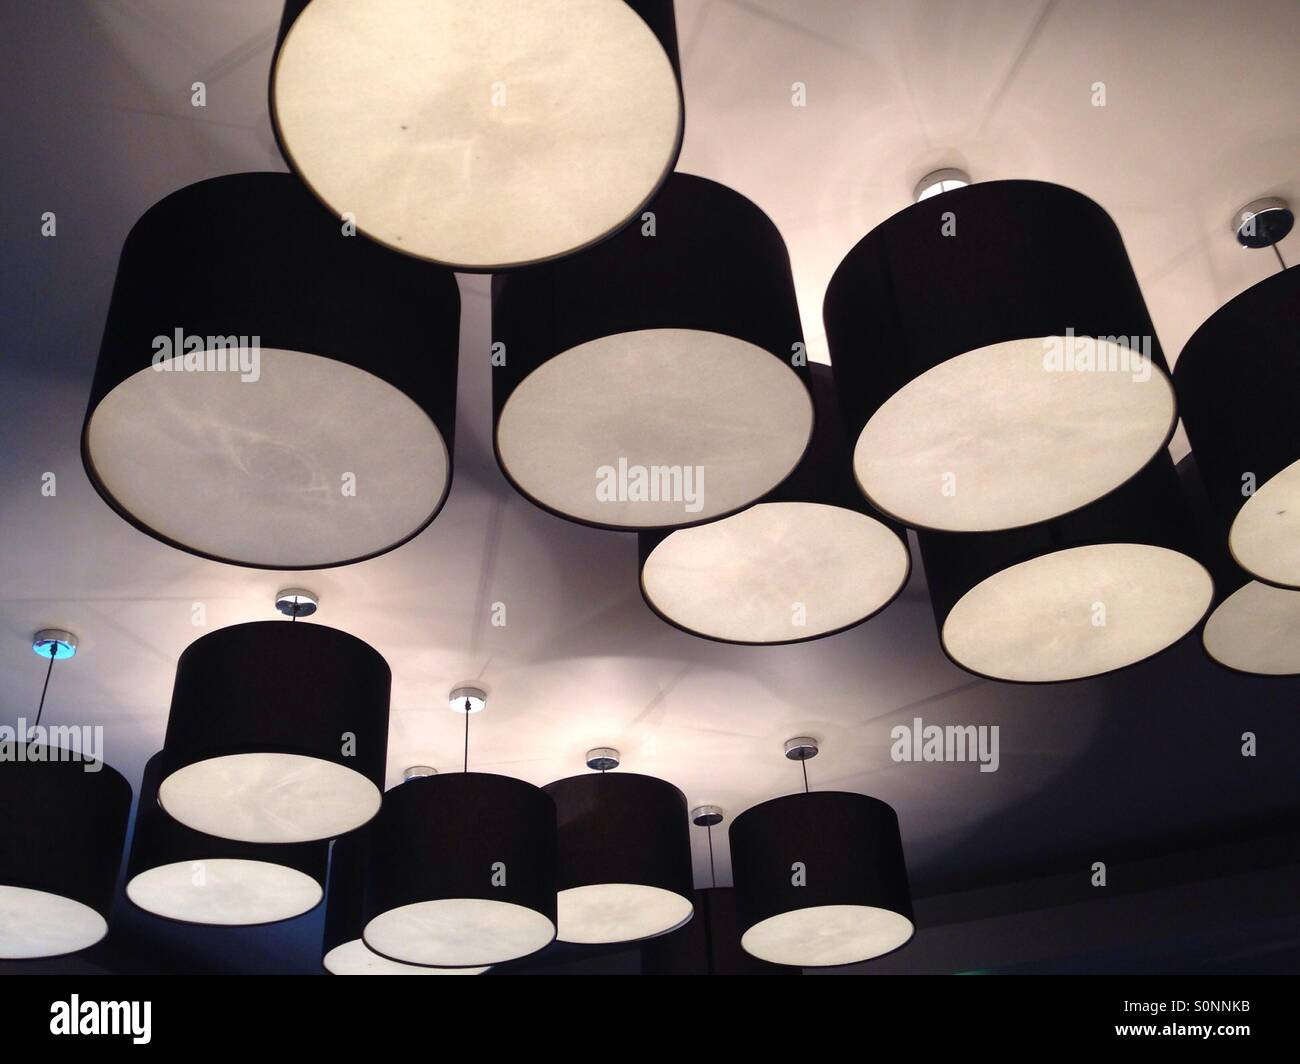 Ceiling lights in hotel - Stock Image